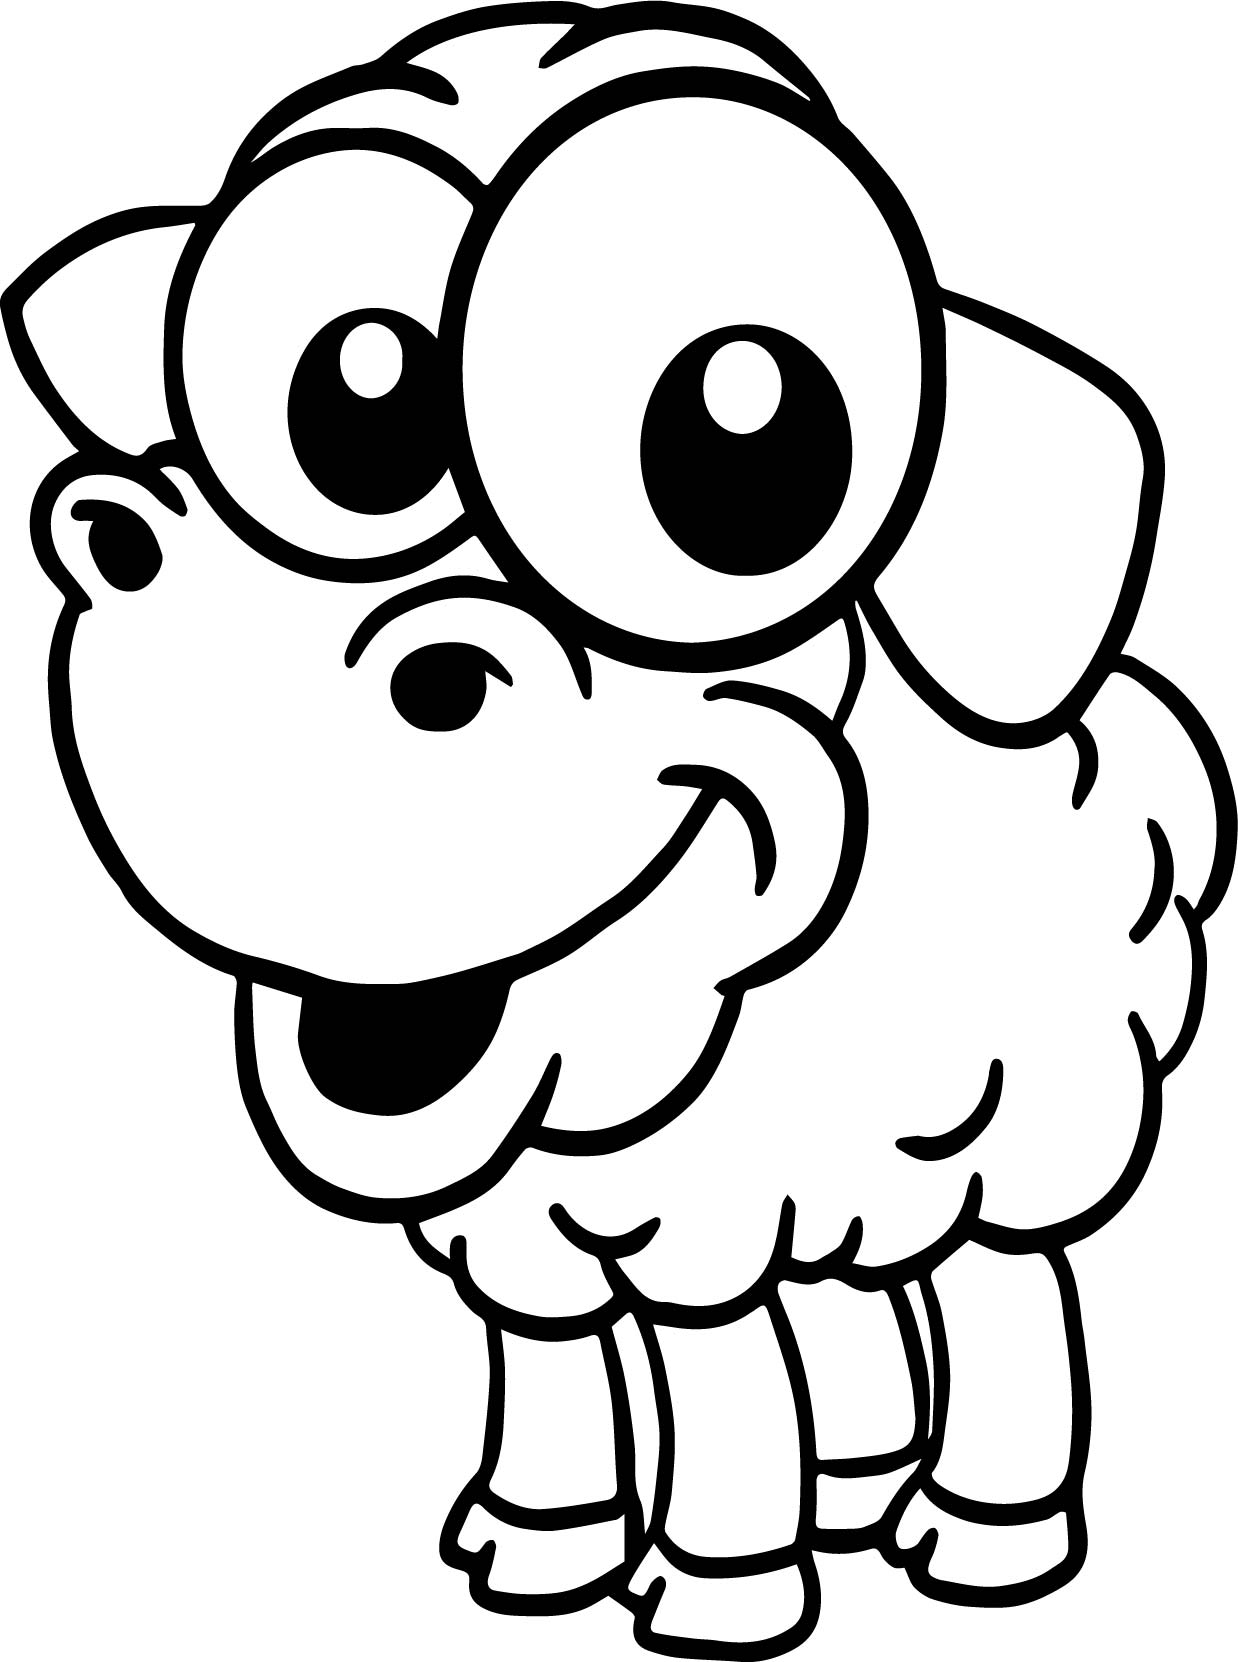 baby animals colouring pages baby farm sheep animal cartoon coloring page pages animals colouring baby